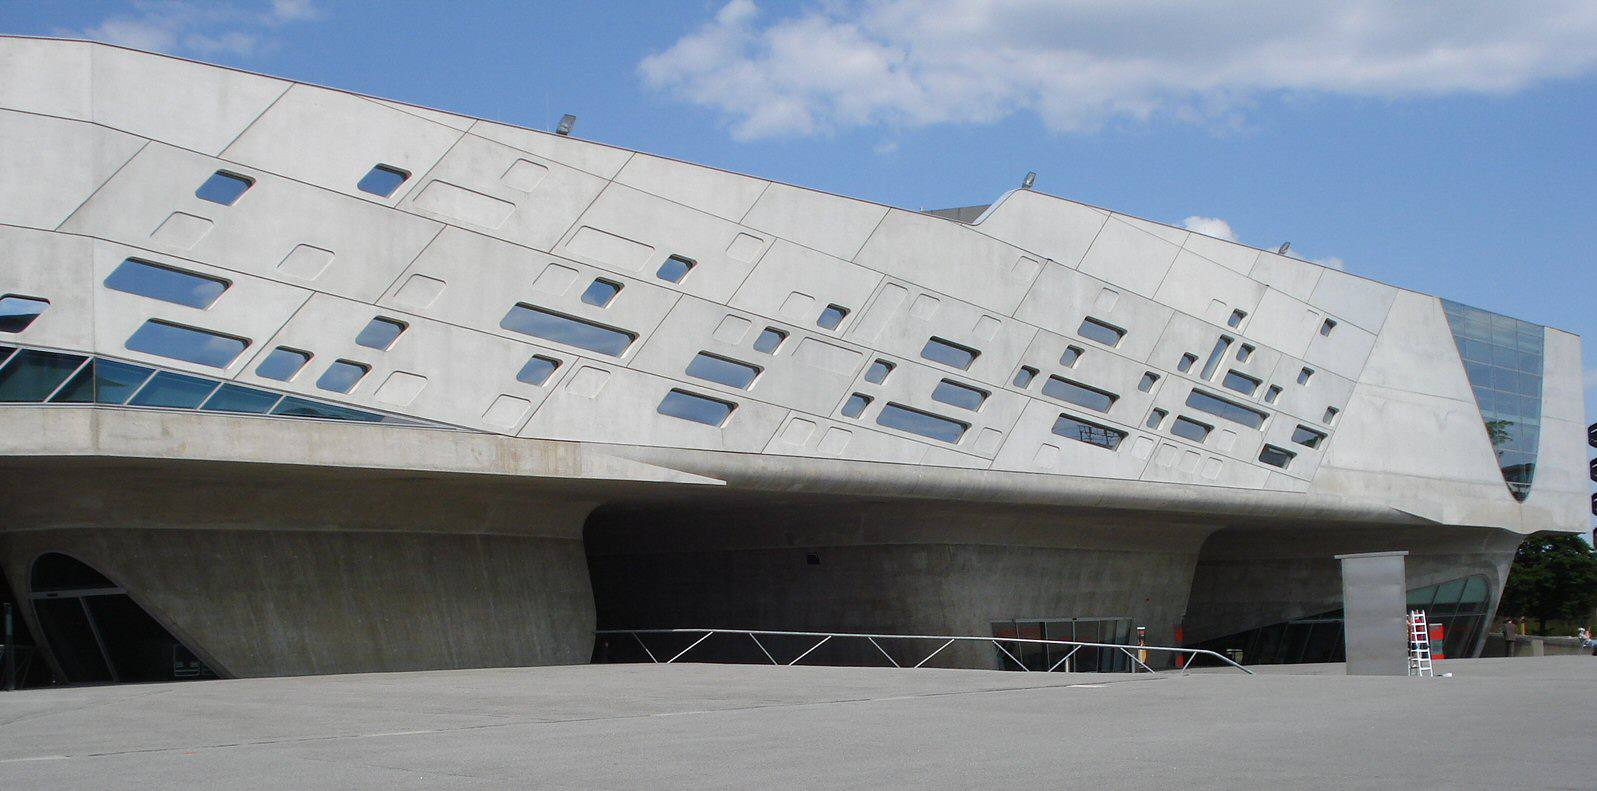 Horizontal concrete building with angled facing and square windows aligned with the facing.